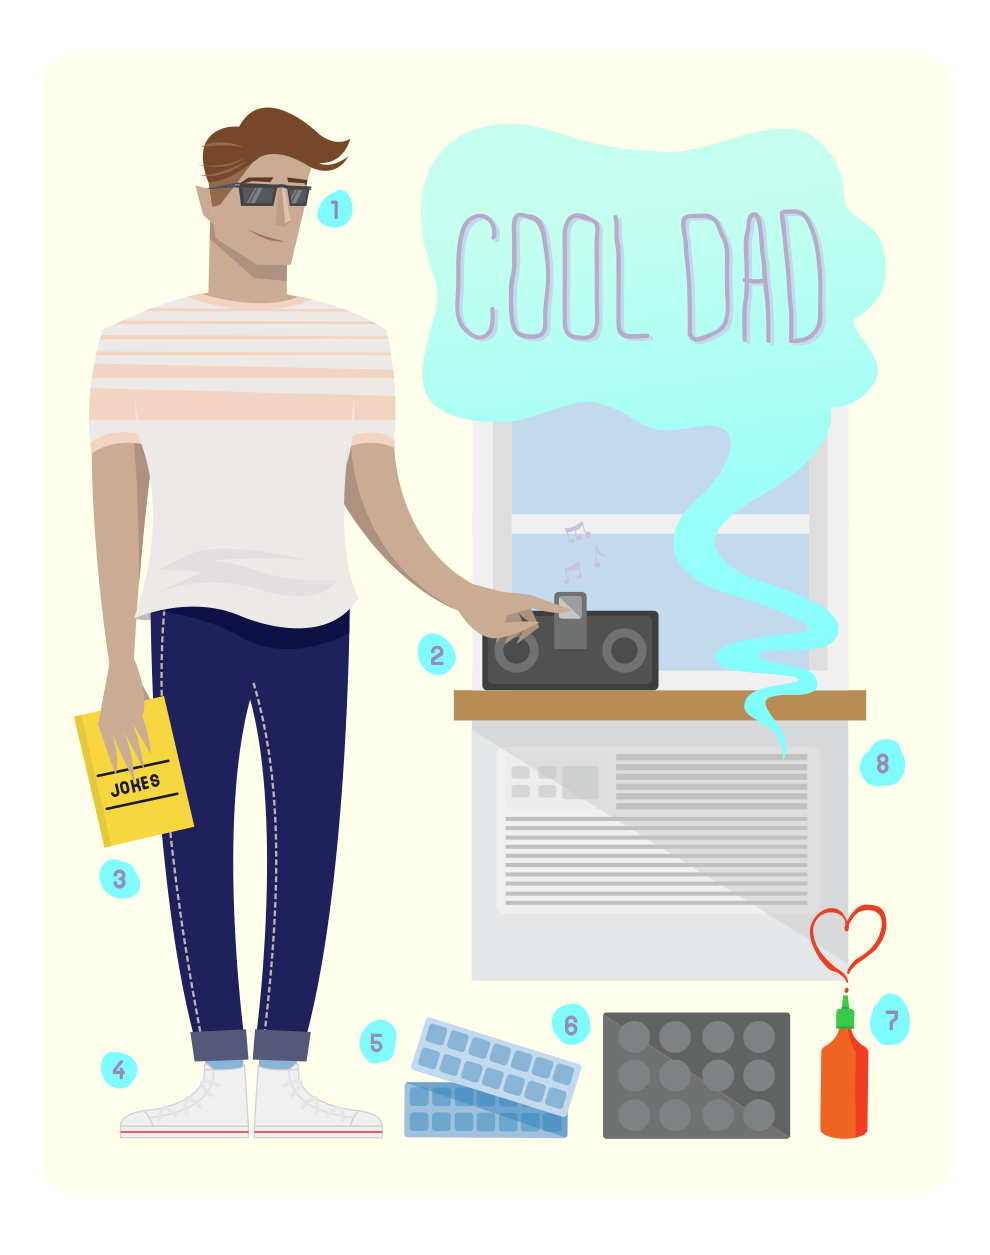 cooldad.png